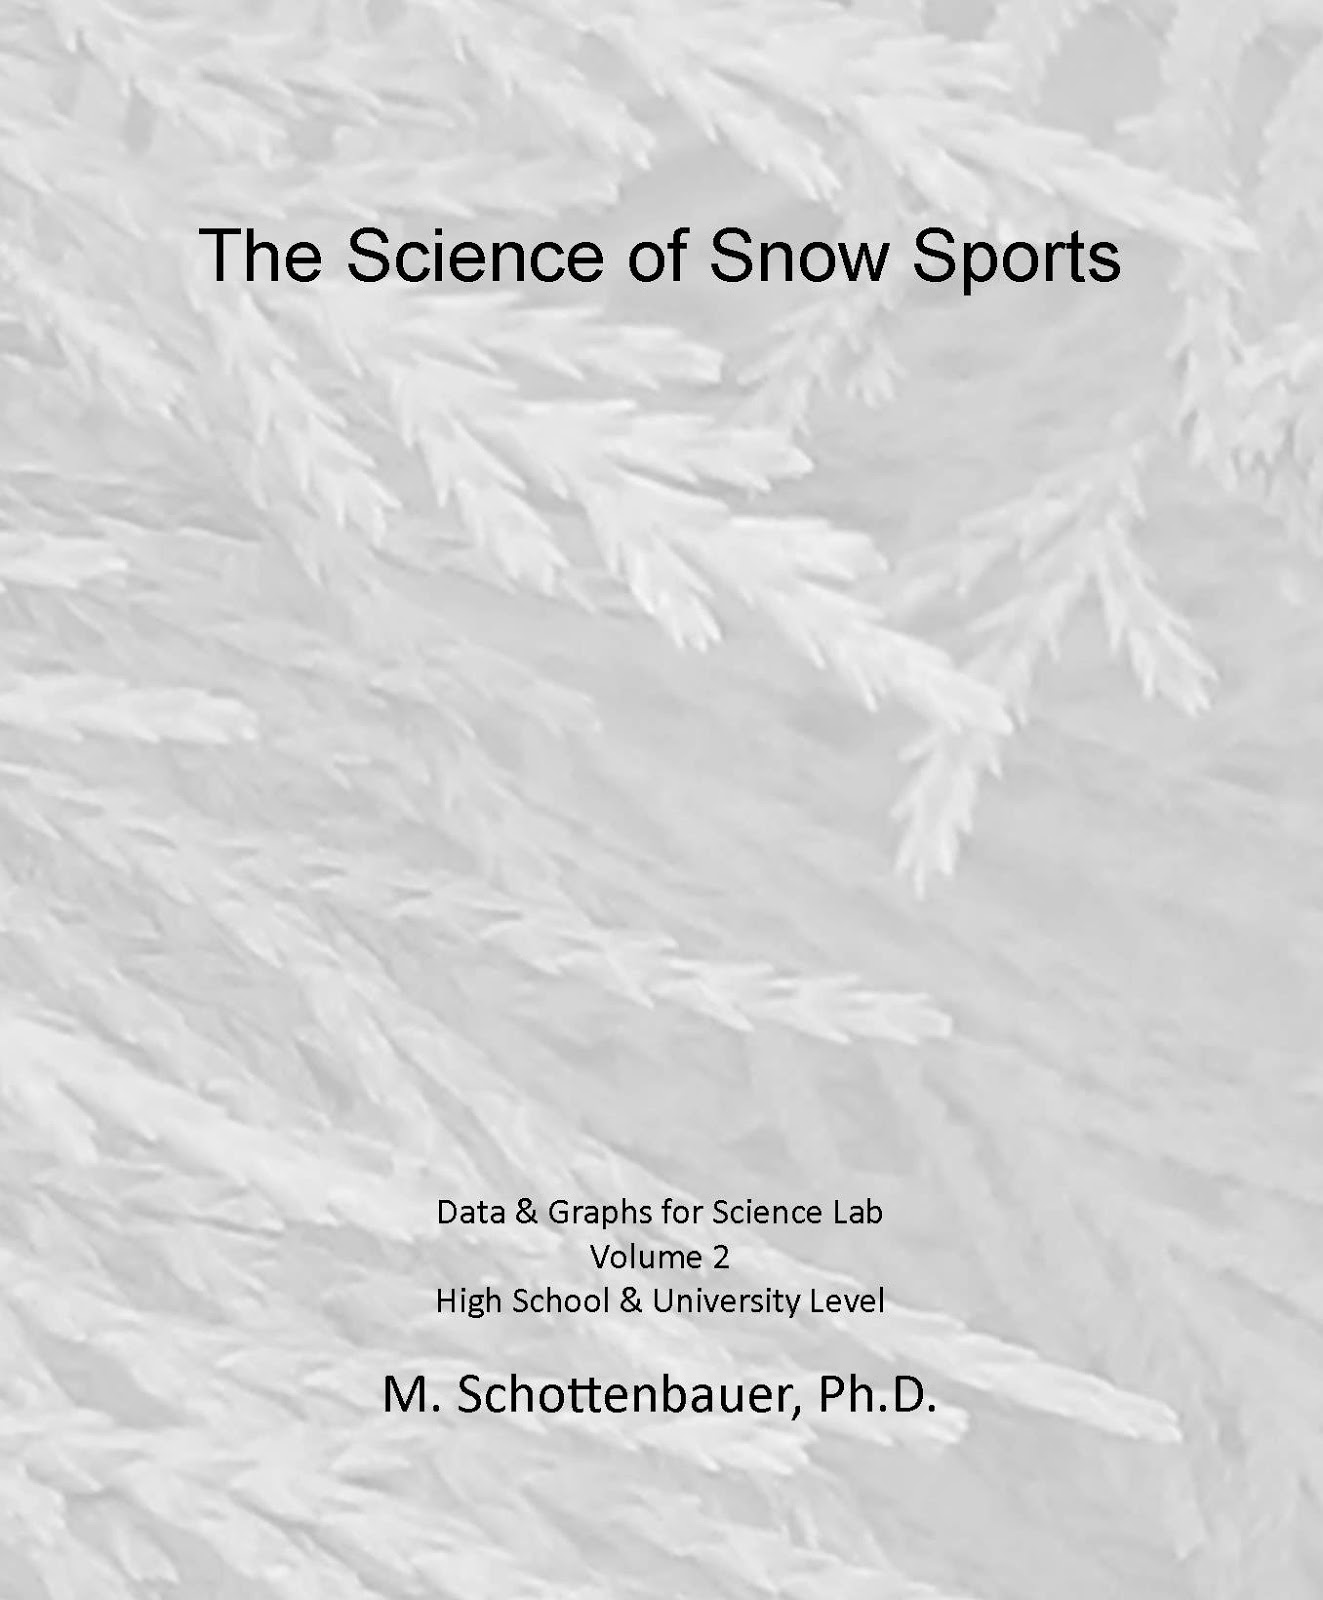 Snow Sport Science: The Science of Snow Sports